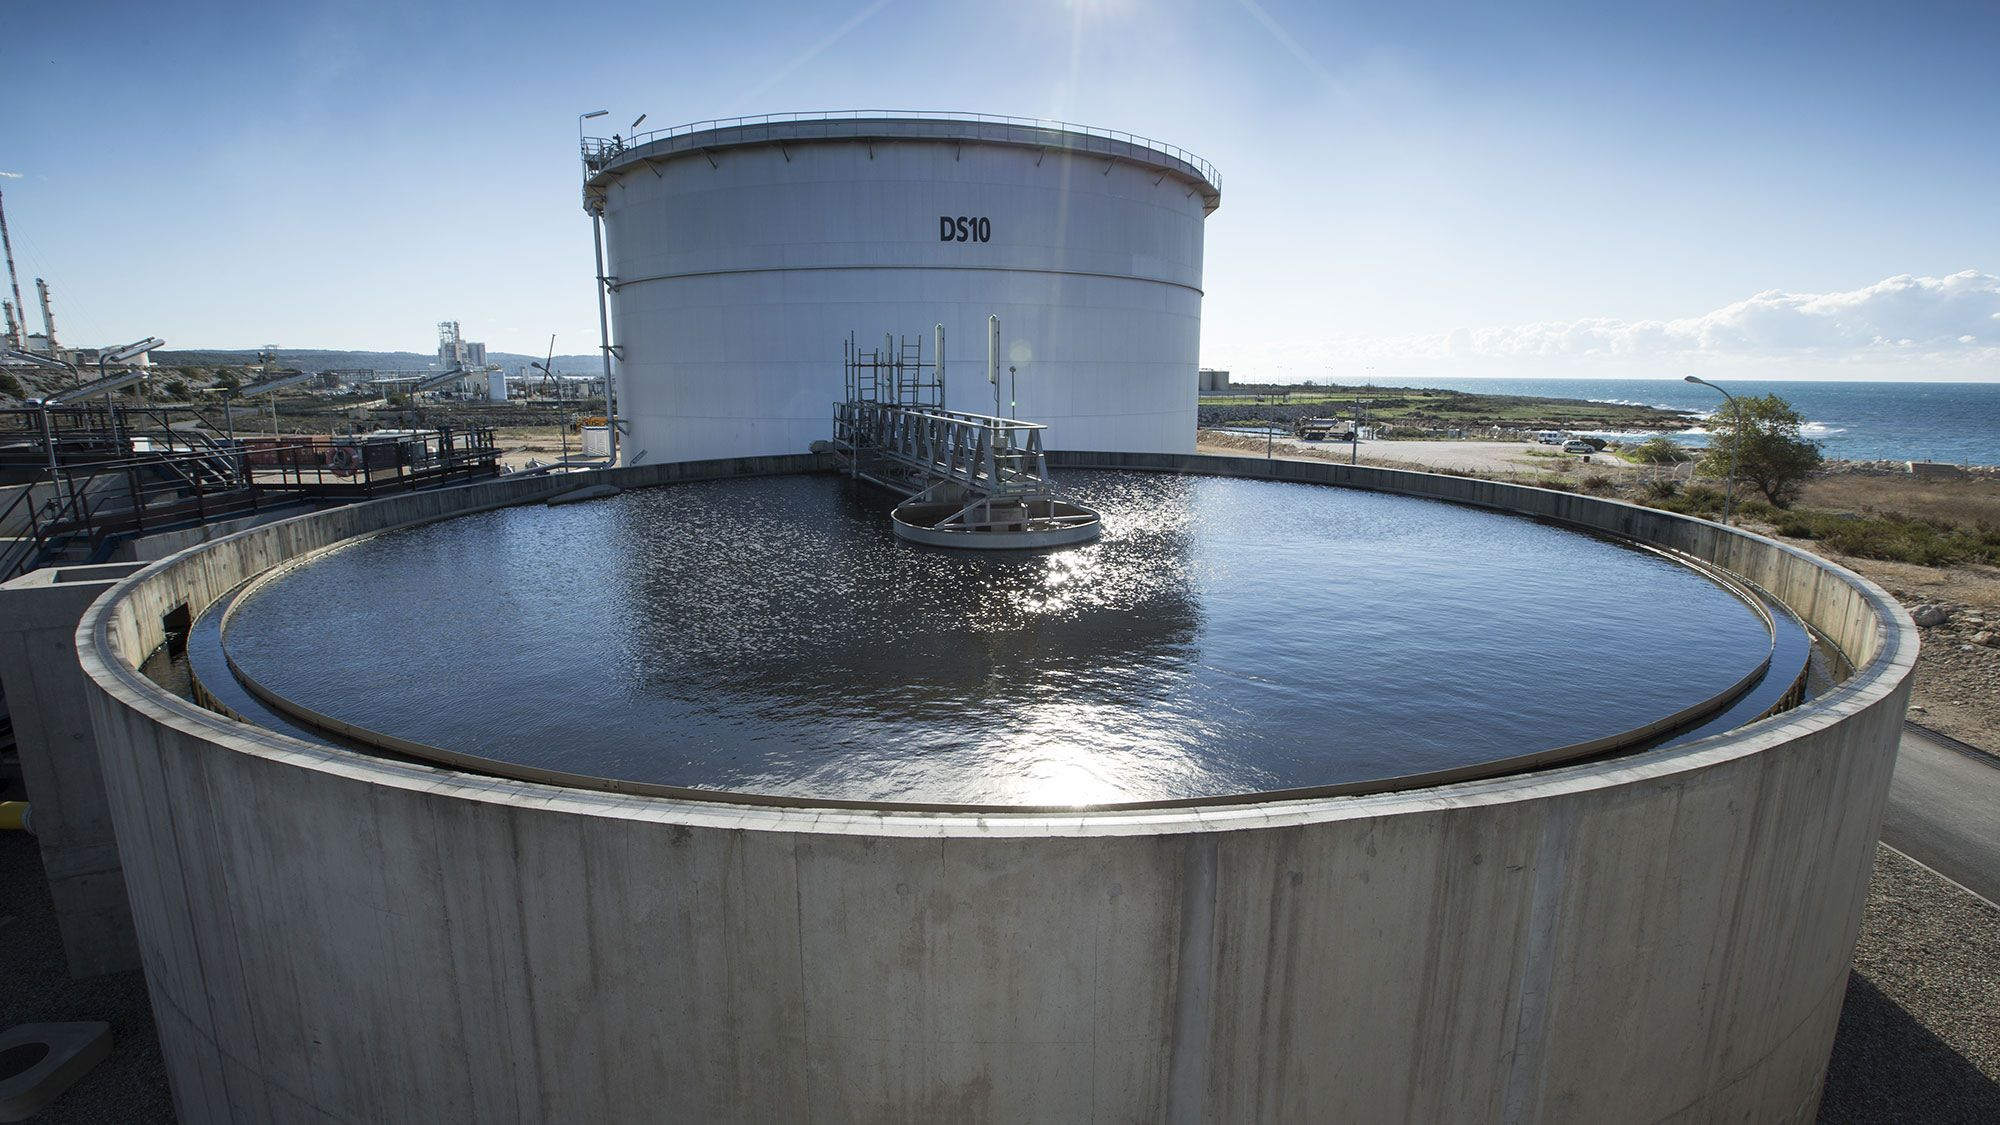 Limit the impact of wastewater treatment plants on their environment